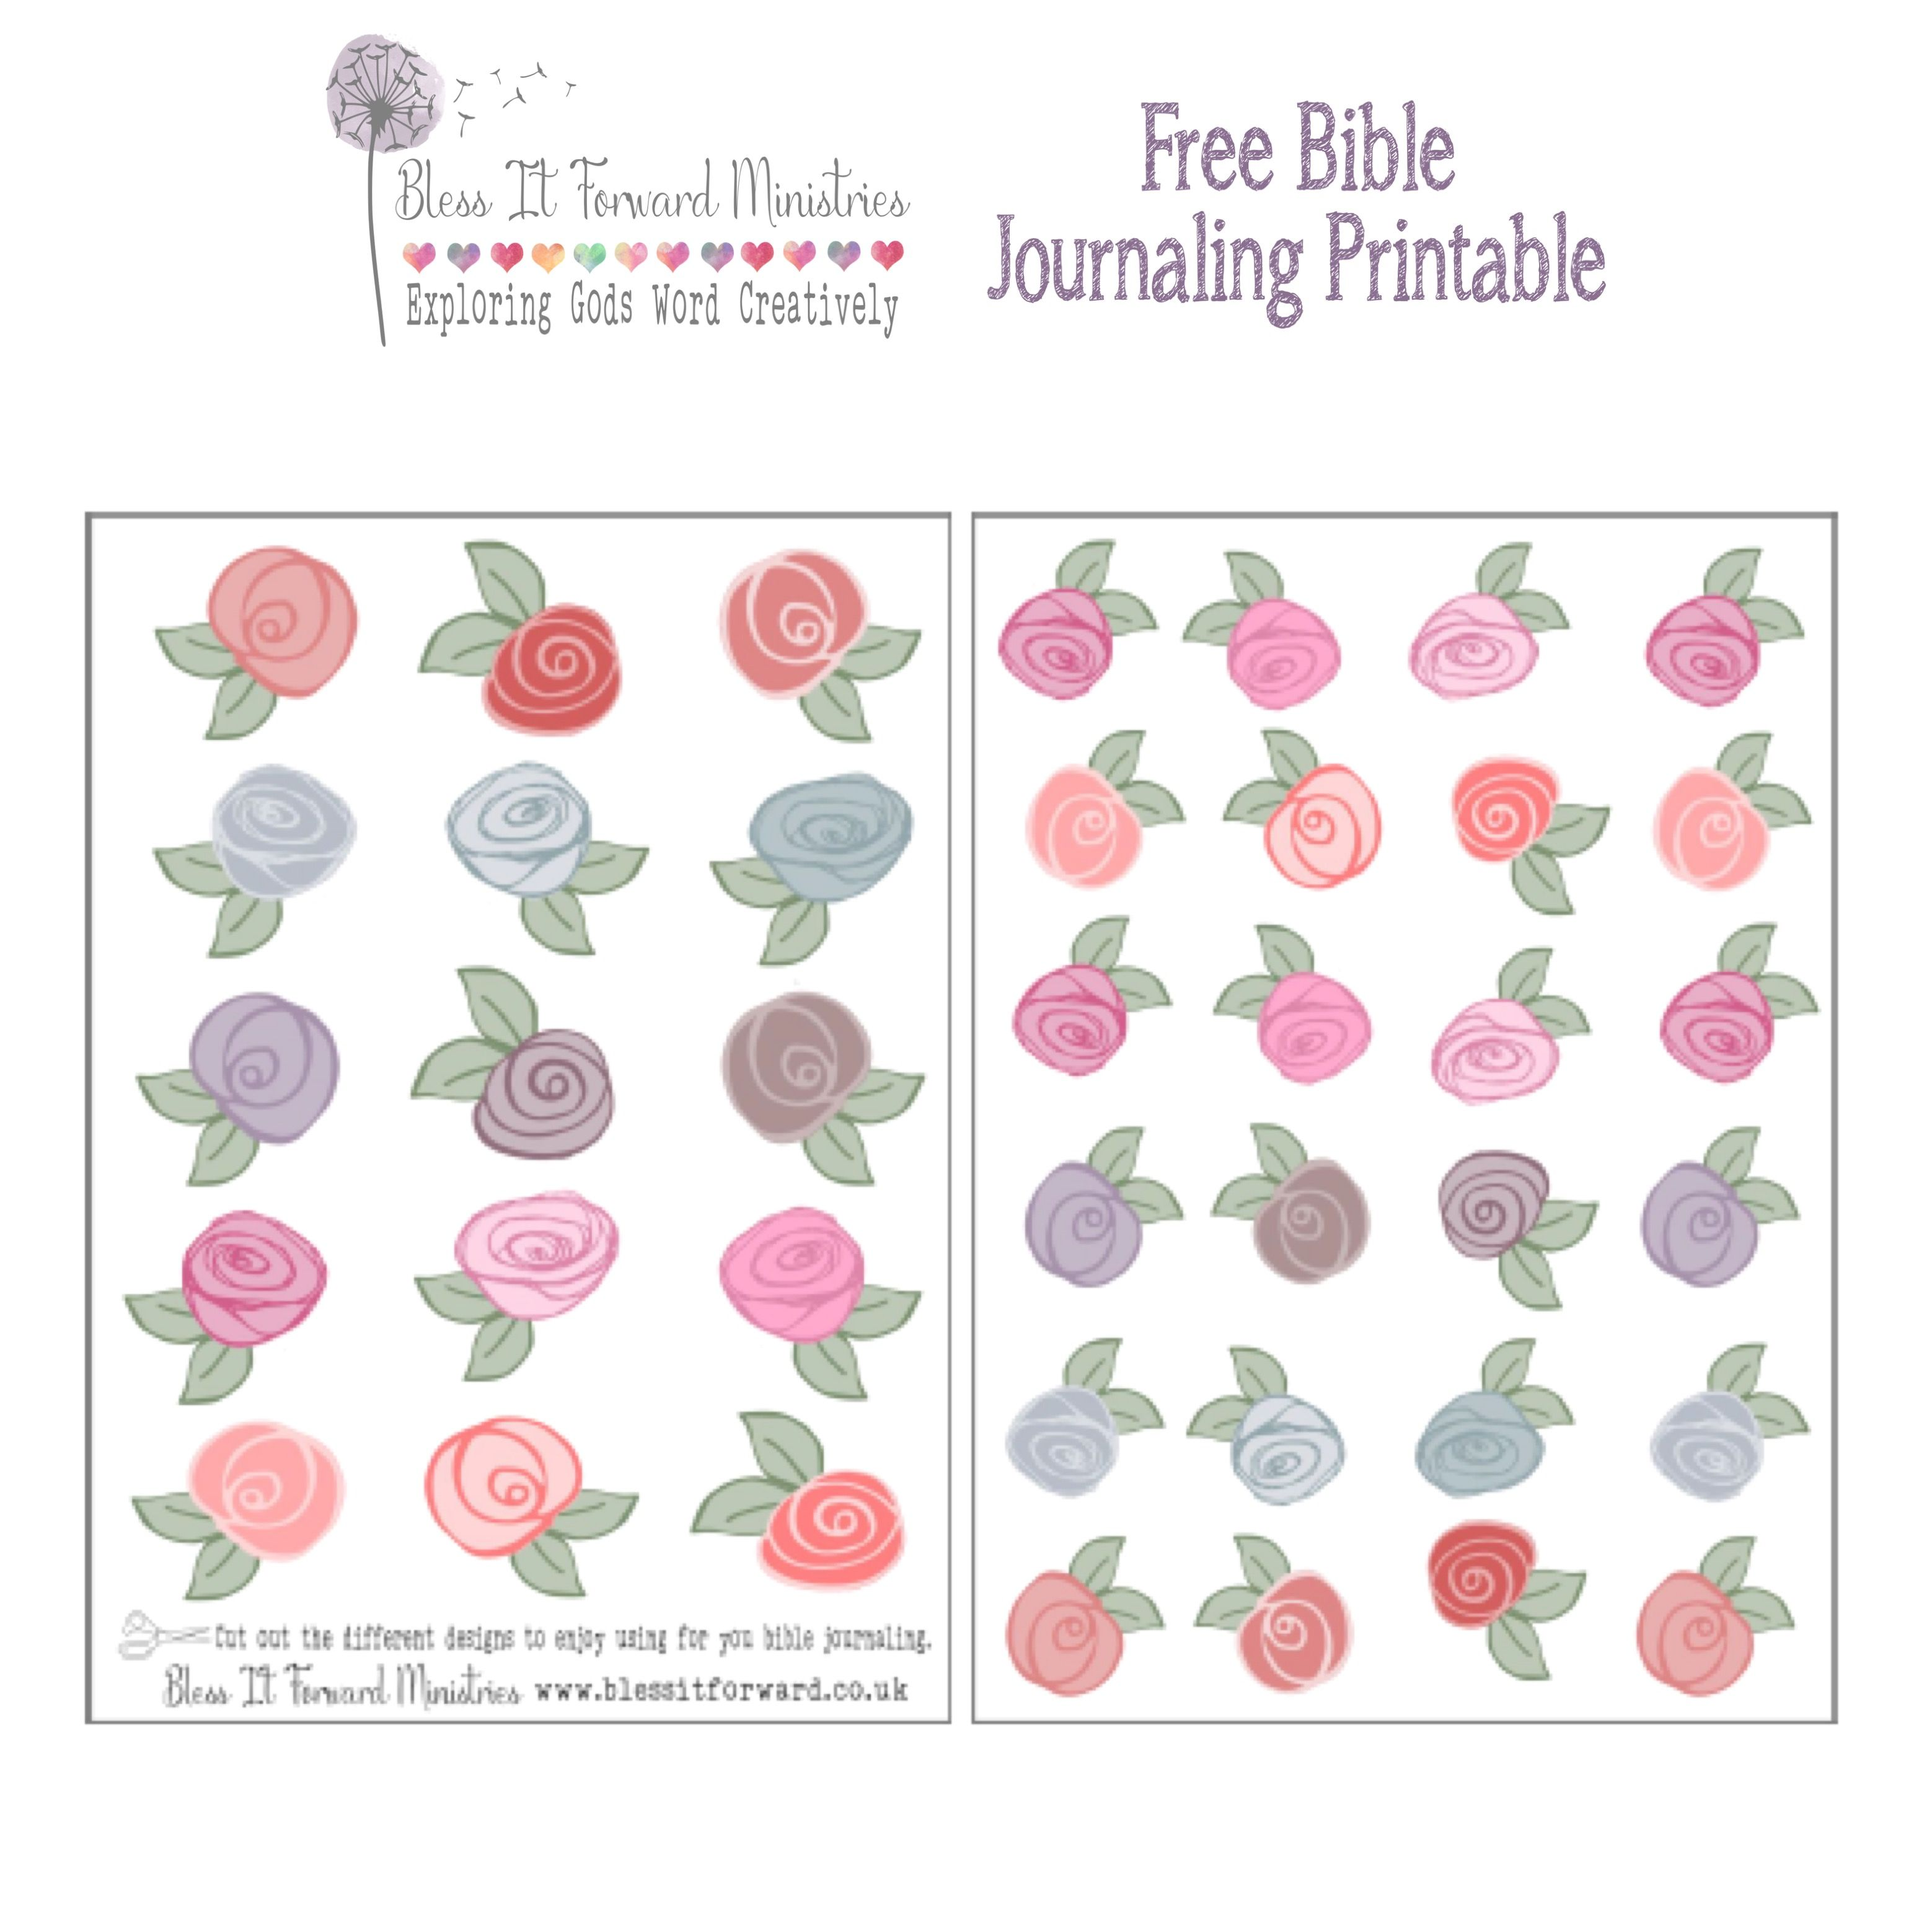 Some Beautiful Flowers To Use In Your Bible Journaling Now